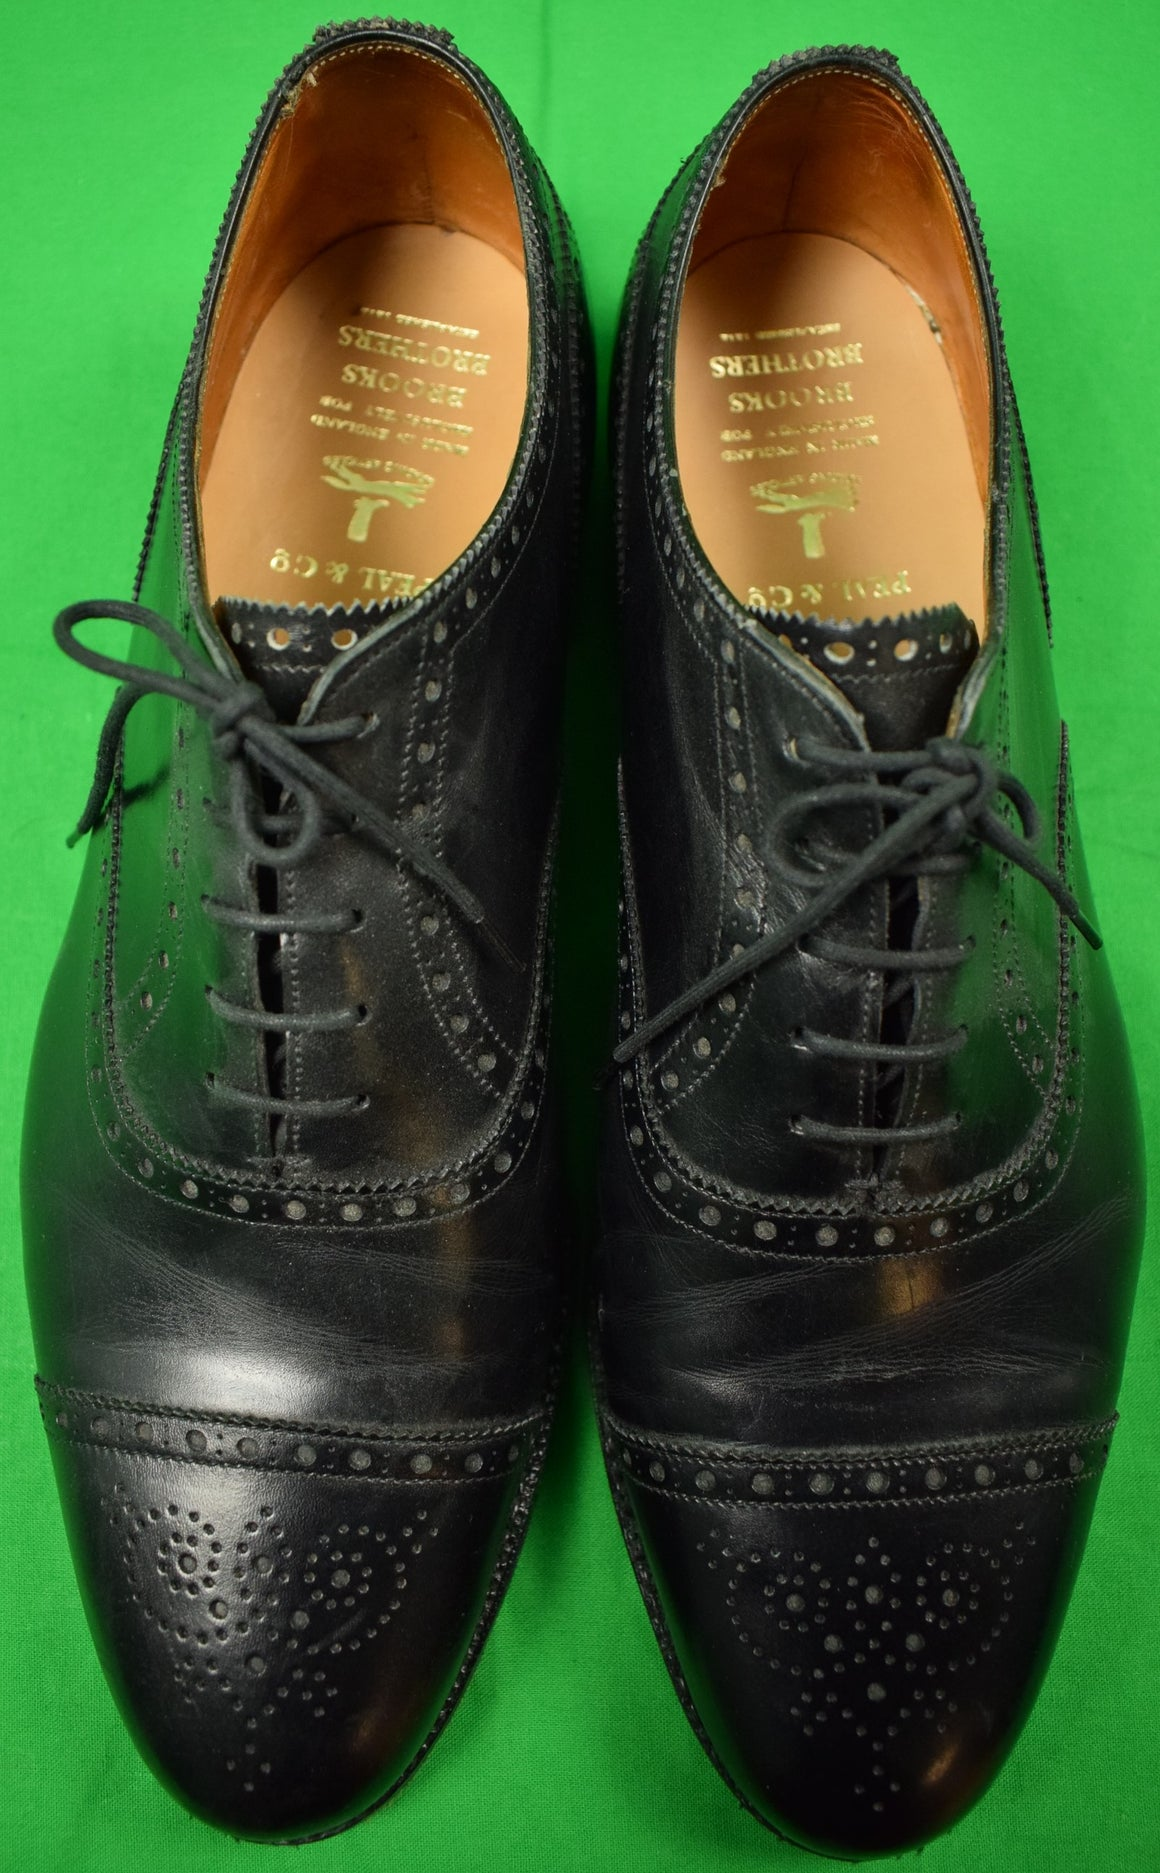 Peal & Co for Brooks Brothers Black Cap Toe Oxfords Sz 11 D